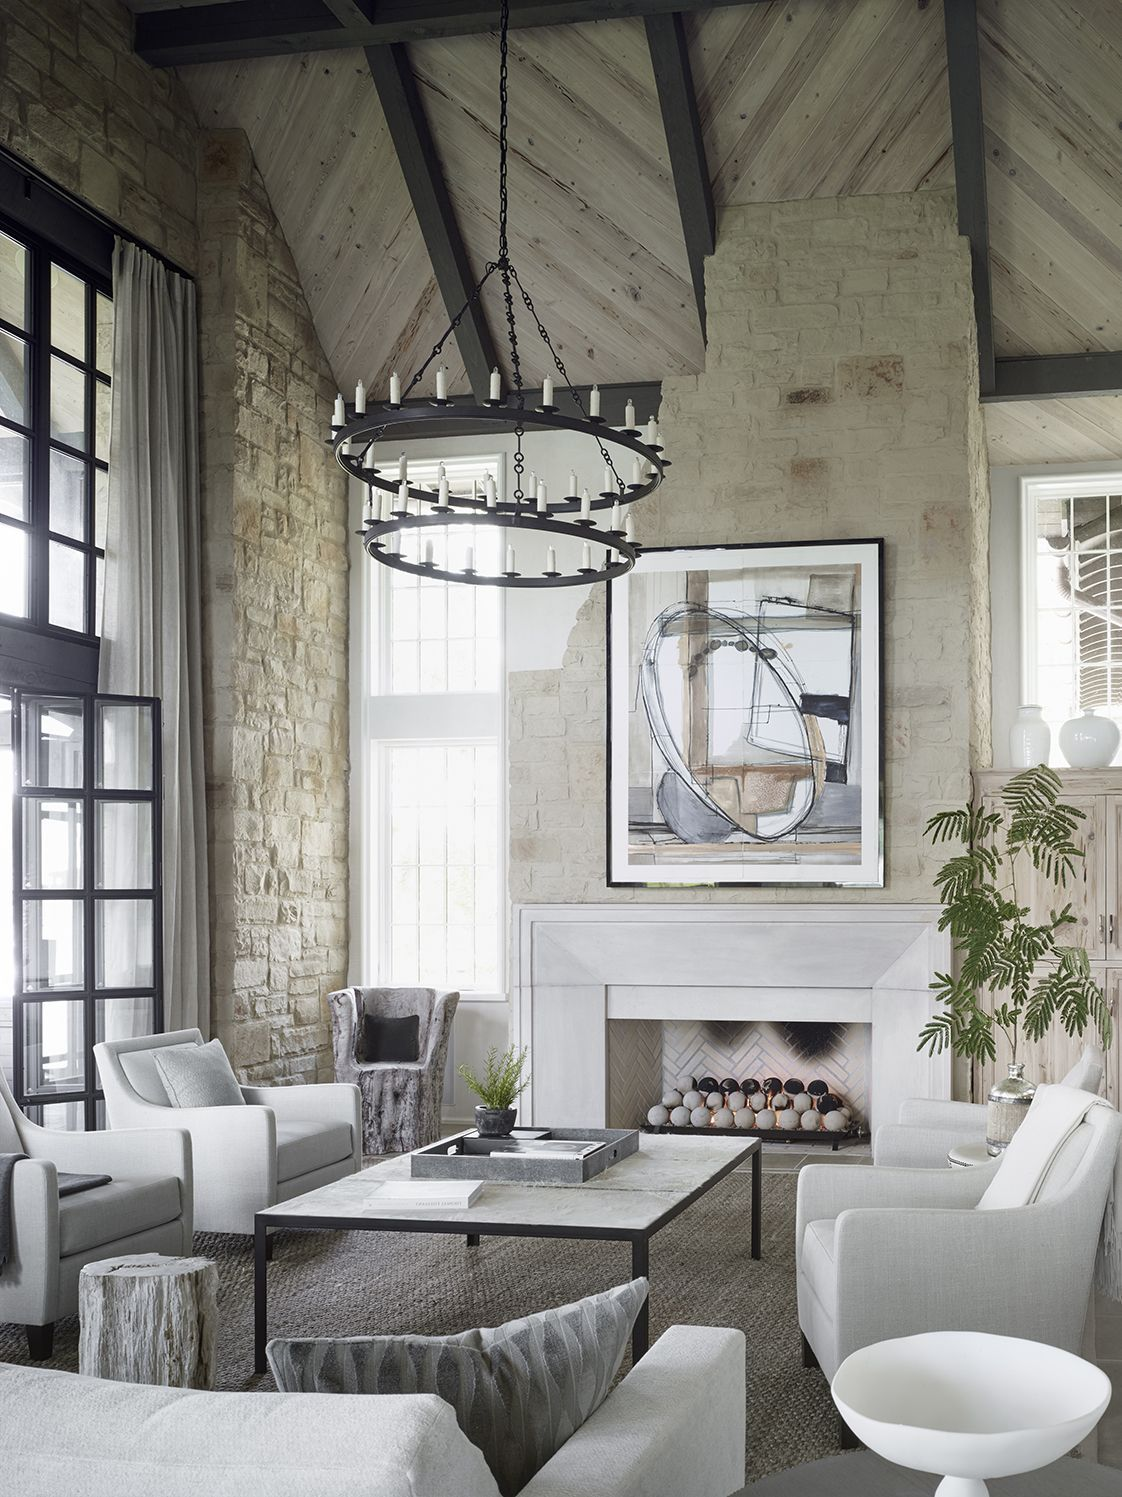 Do Fireplaces Increase Overall Home Value